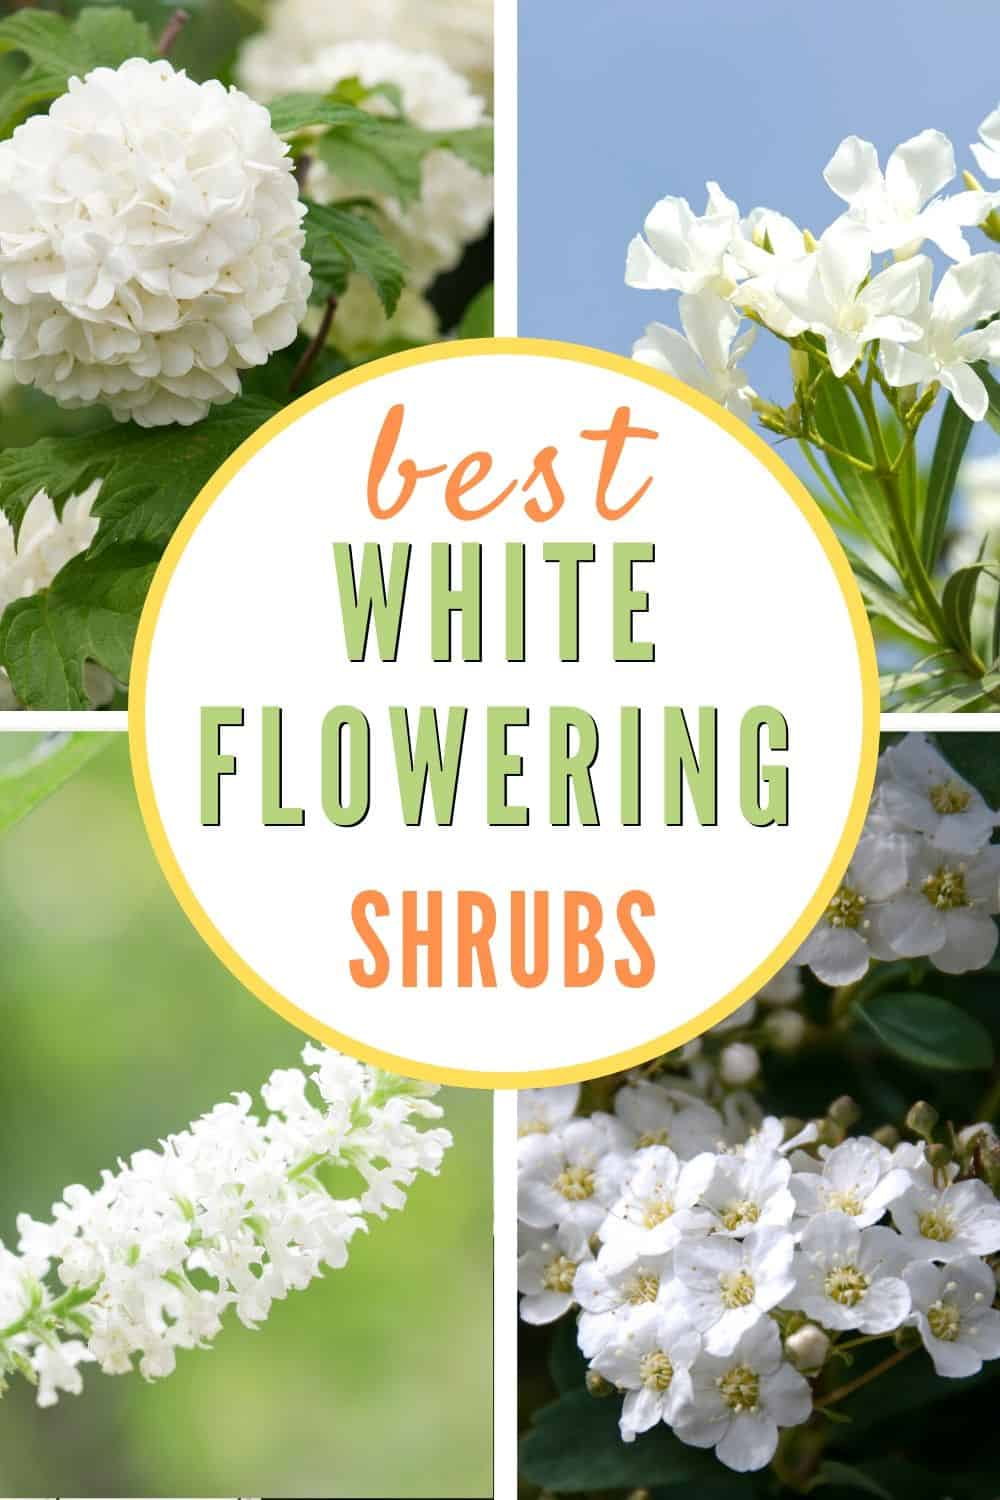 Collection of white flowering shrubs